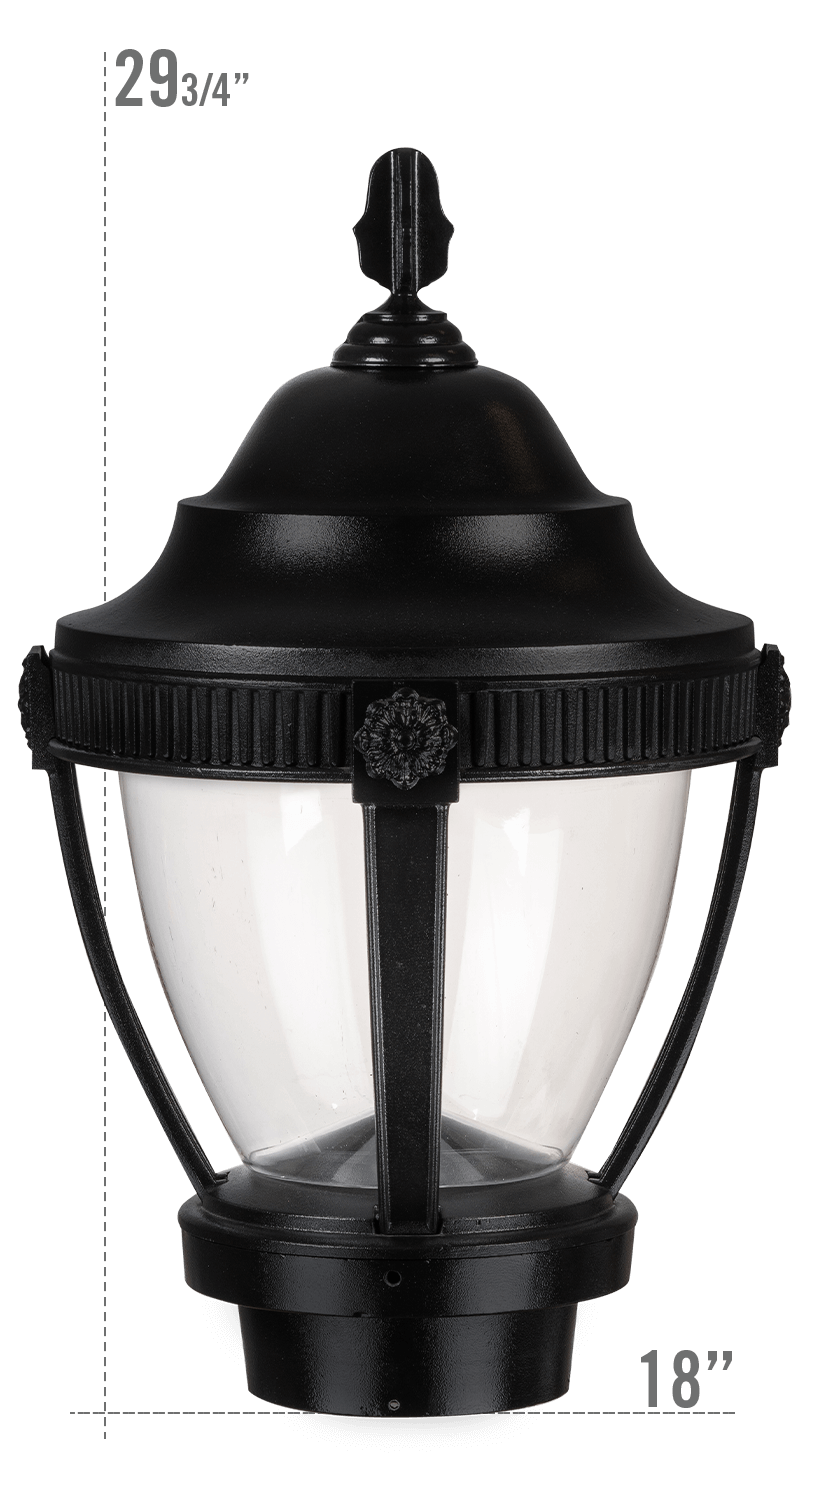 AUGUSTA LED LUMINAIRE WITH VILLANOVA LARGE FITTER CLEAR GLOBE